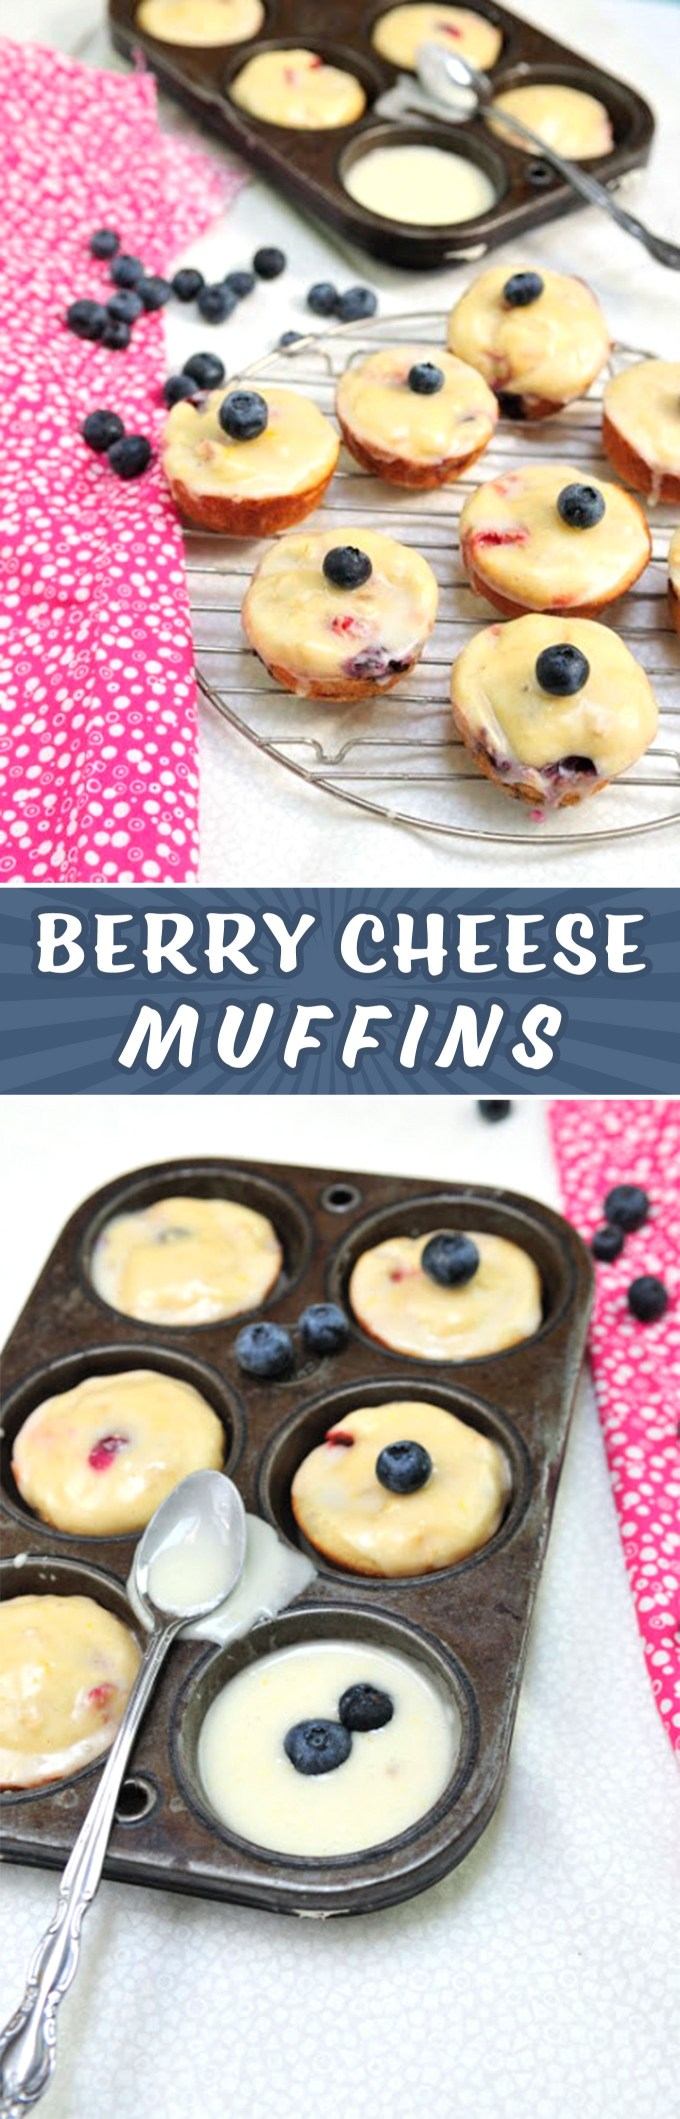 Berry Cheese Muffins with Lemon Glaze Recipe by Sweet2EatBaking.com | A fuss-free moist muffin recipe that's perfect for summer. Made with fresh berries (strawberries and blueberries) and ricotta cheese. Topped off with a tart refreshing lemon glaze. Enjoy for breakfast or as a tasty snack.